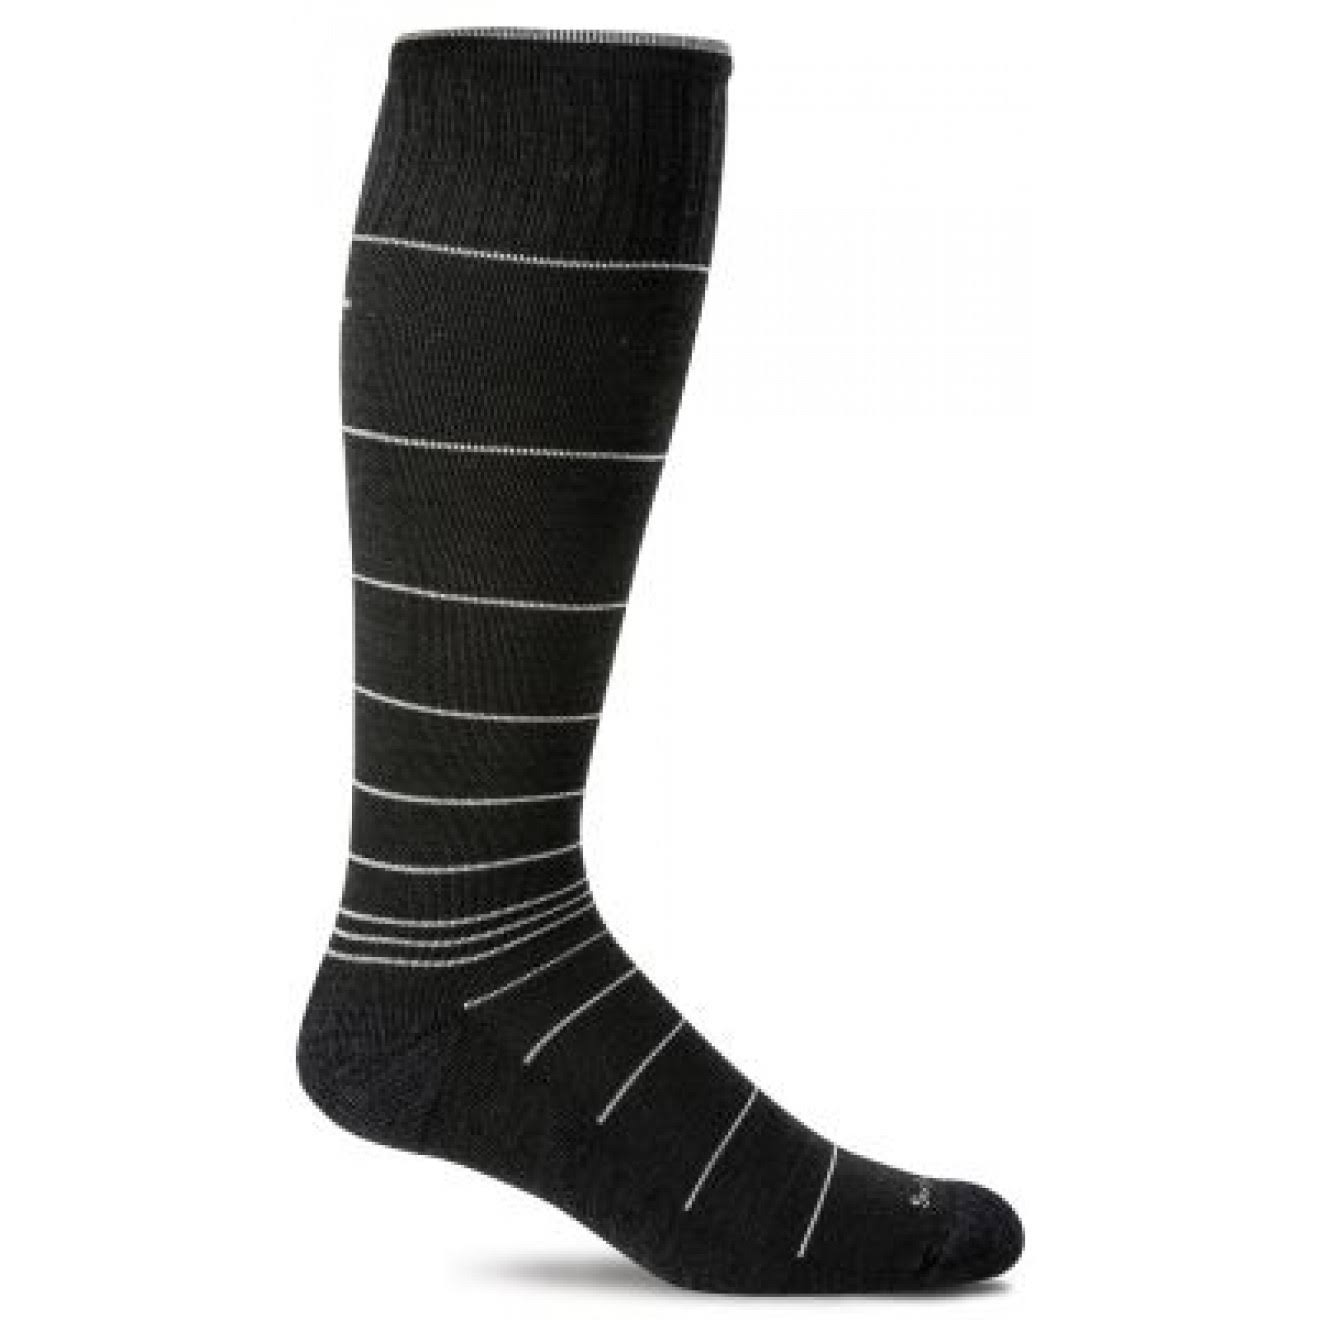 Sockwell Men's Circulator Compression Socks - Large-X-Large, Black Stripe